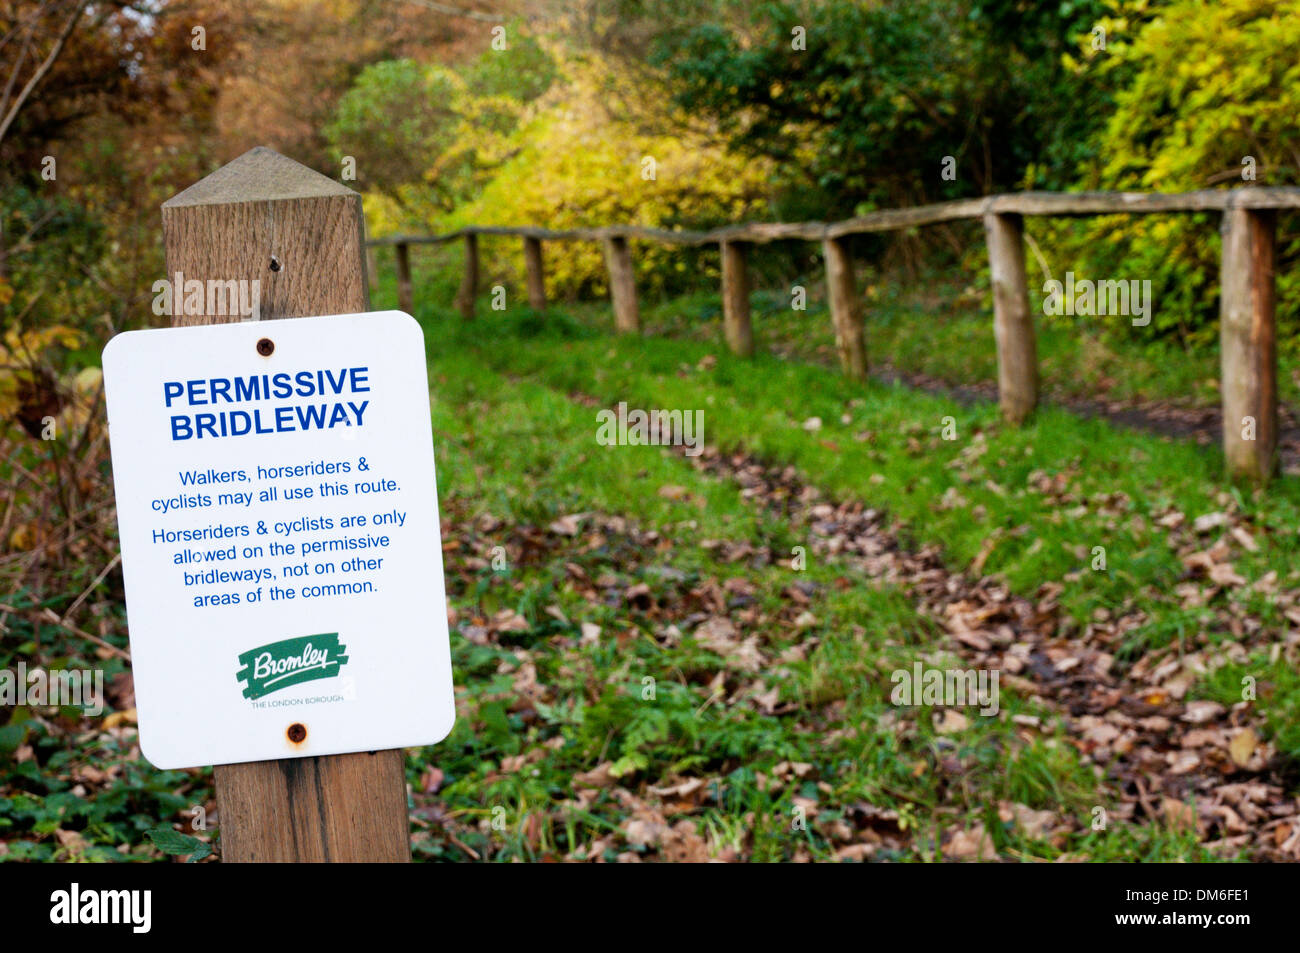 A Permissive Bridleway sign on Hayes Common. - Stock Image